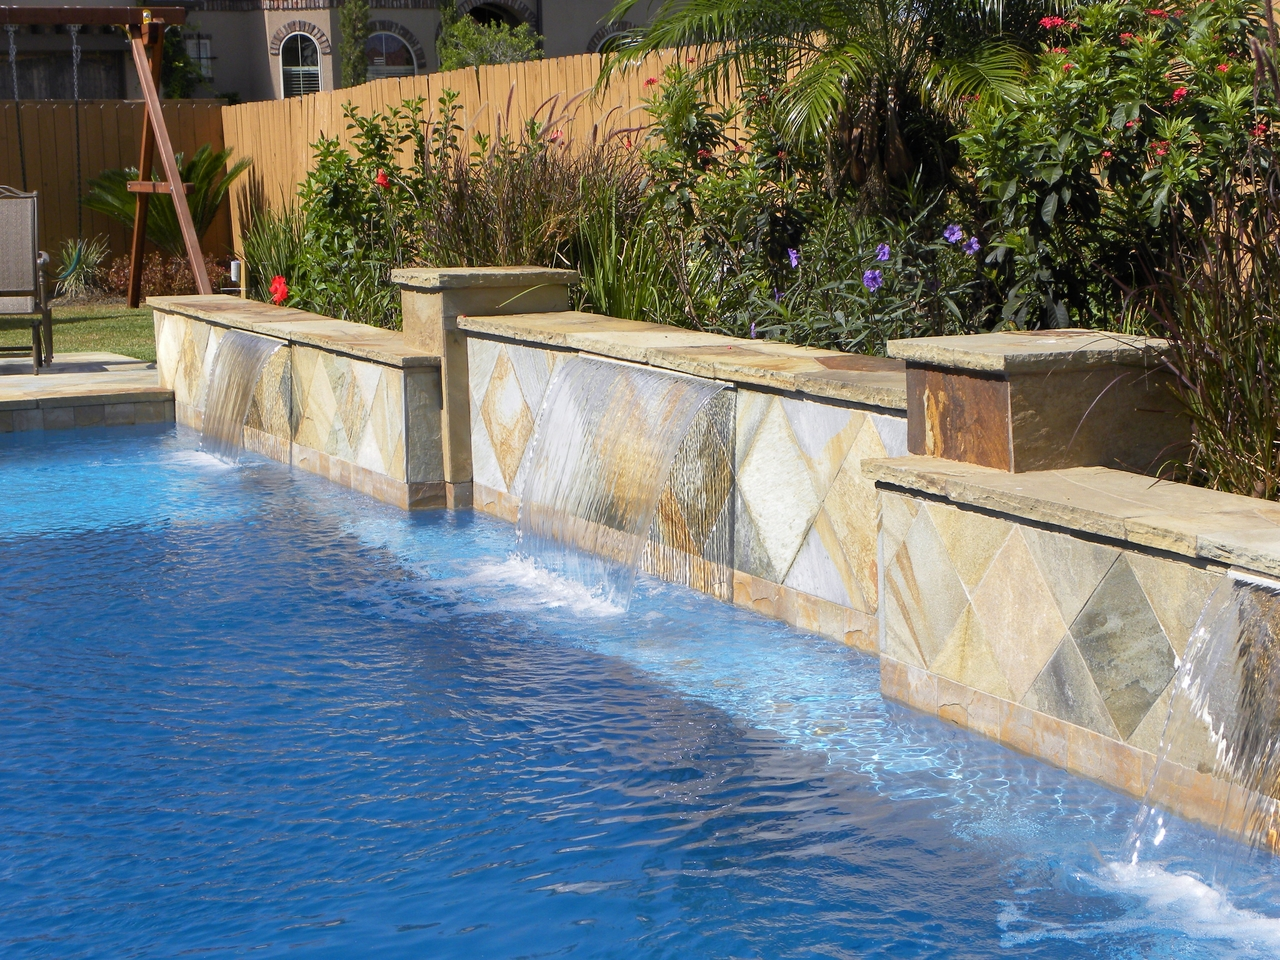 3 Myths About Owning a Swimming Pool